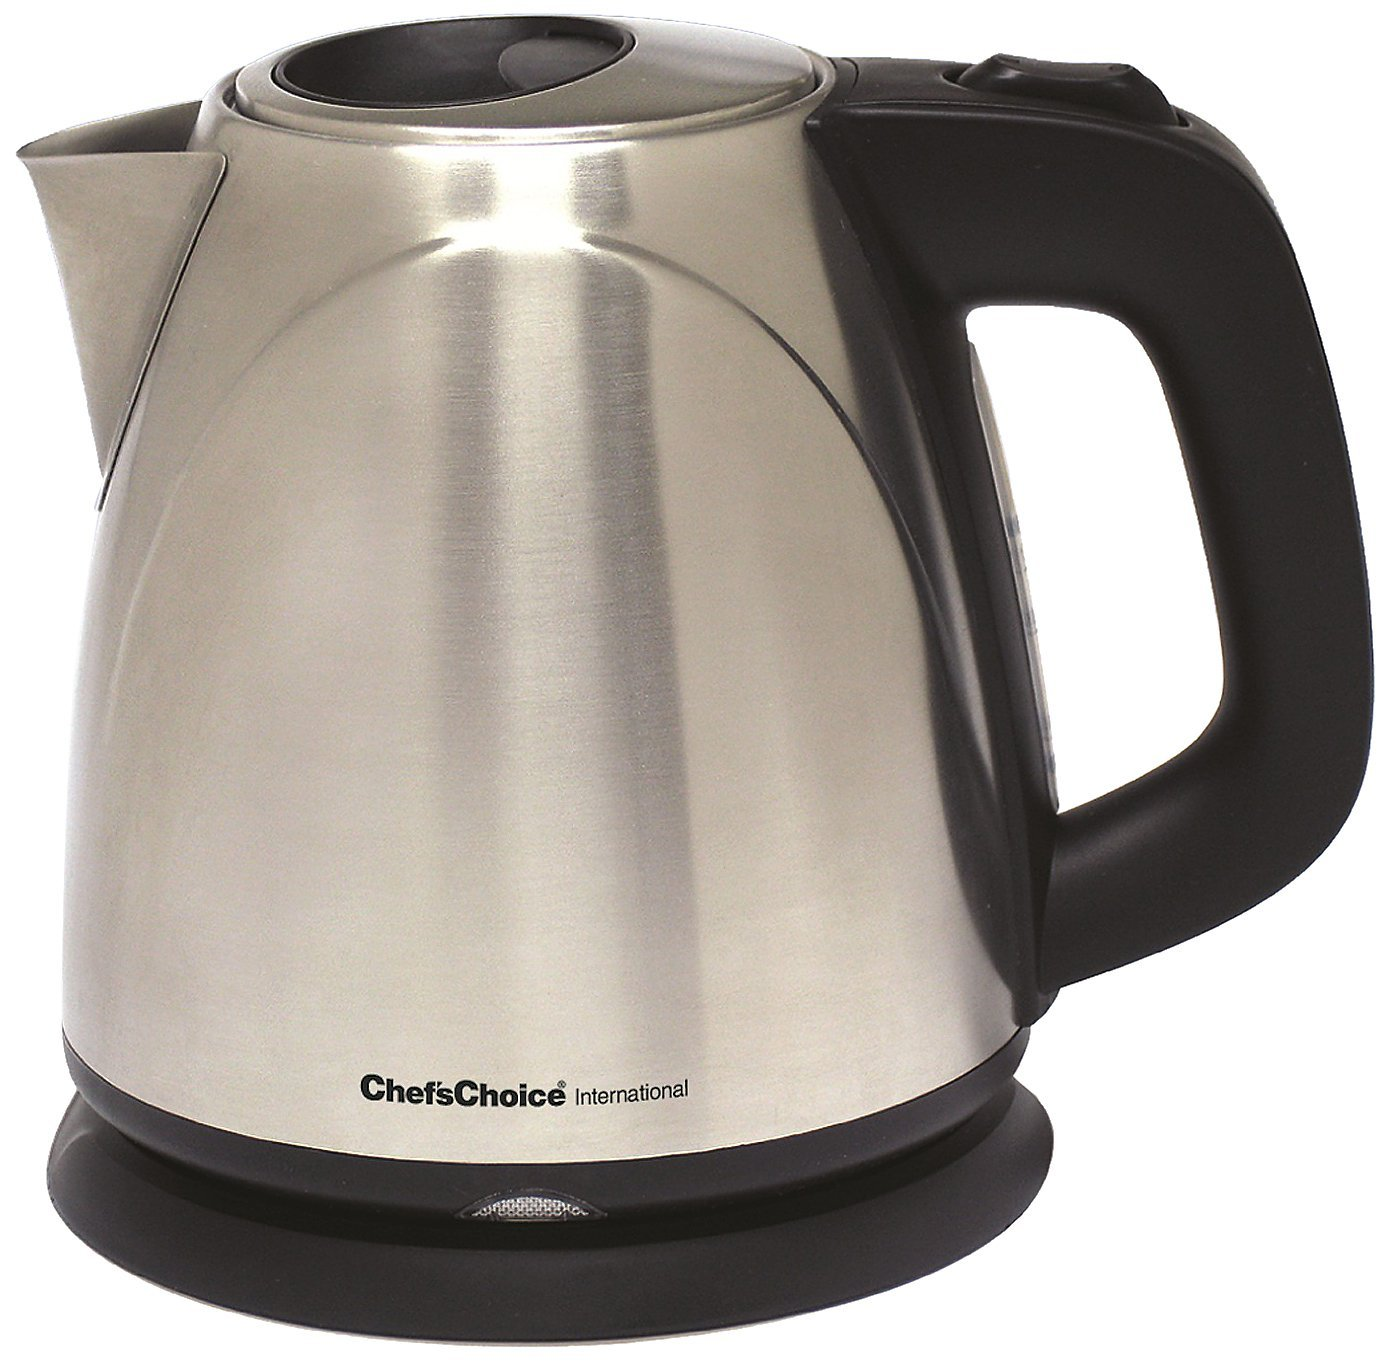 Chef's Choice 673 Cordless Compact Small Electric Kettle